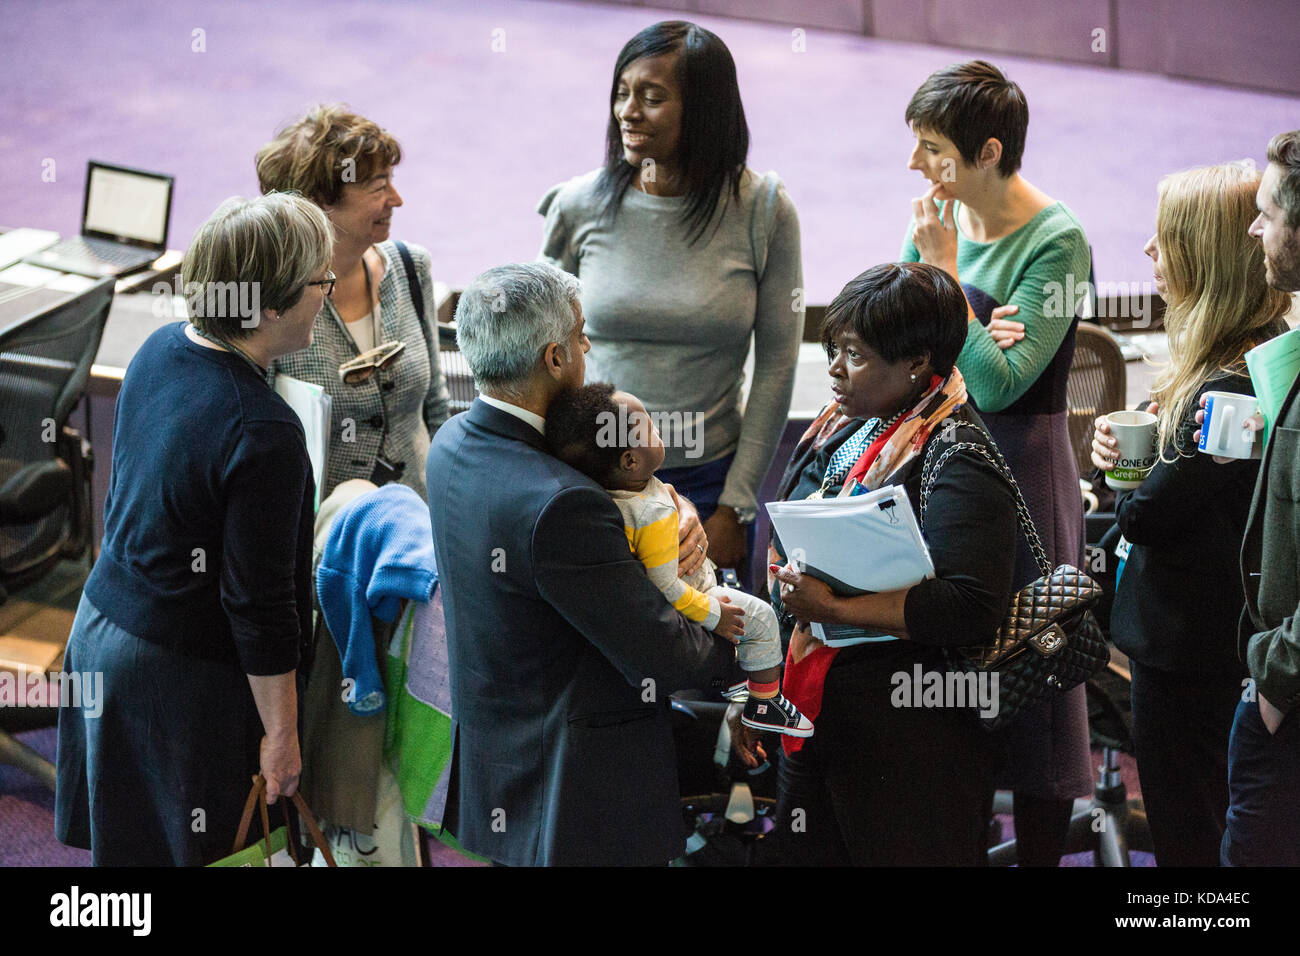 London, UK. 12th Oct, 2017. Mayor of London Sadiq Khan holds the son of Labour London Assembly Member Florence Eshalomi - Stock Image